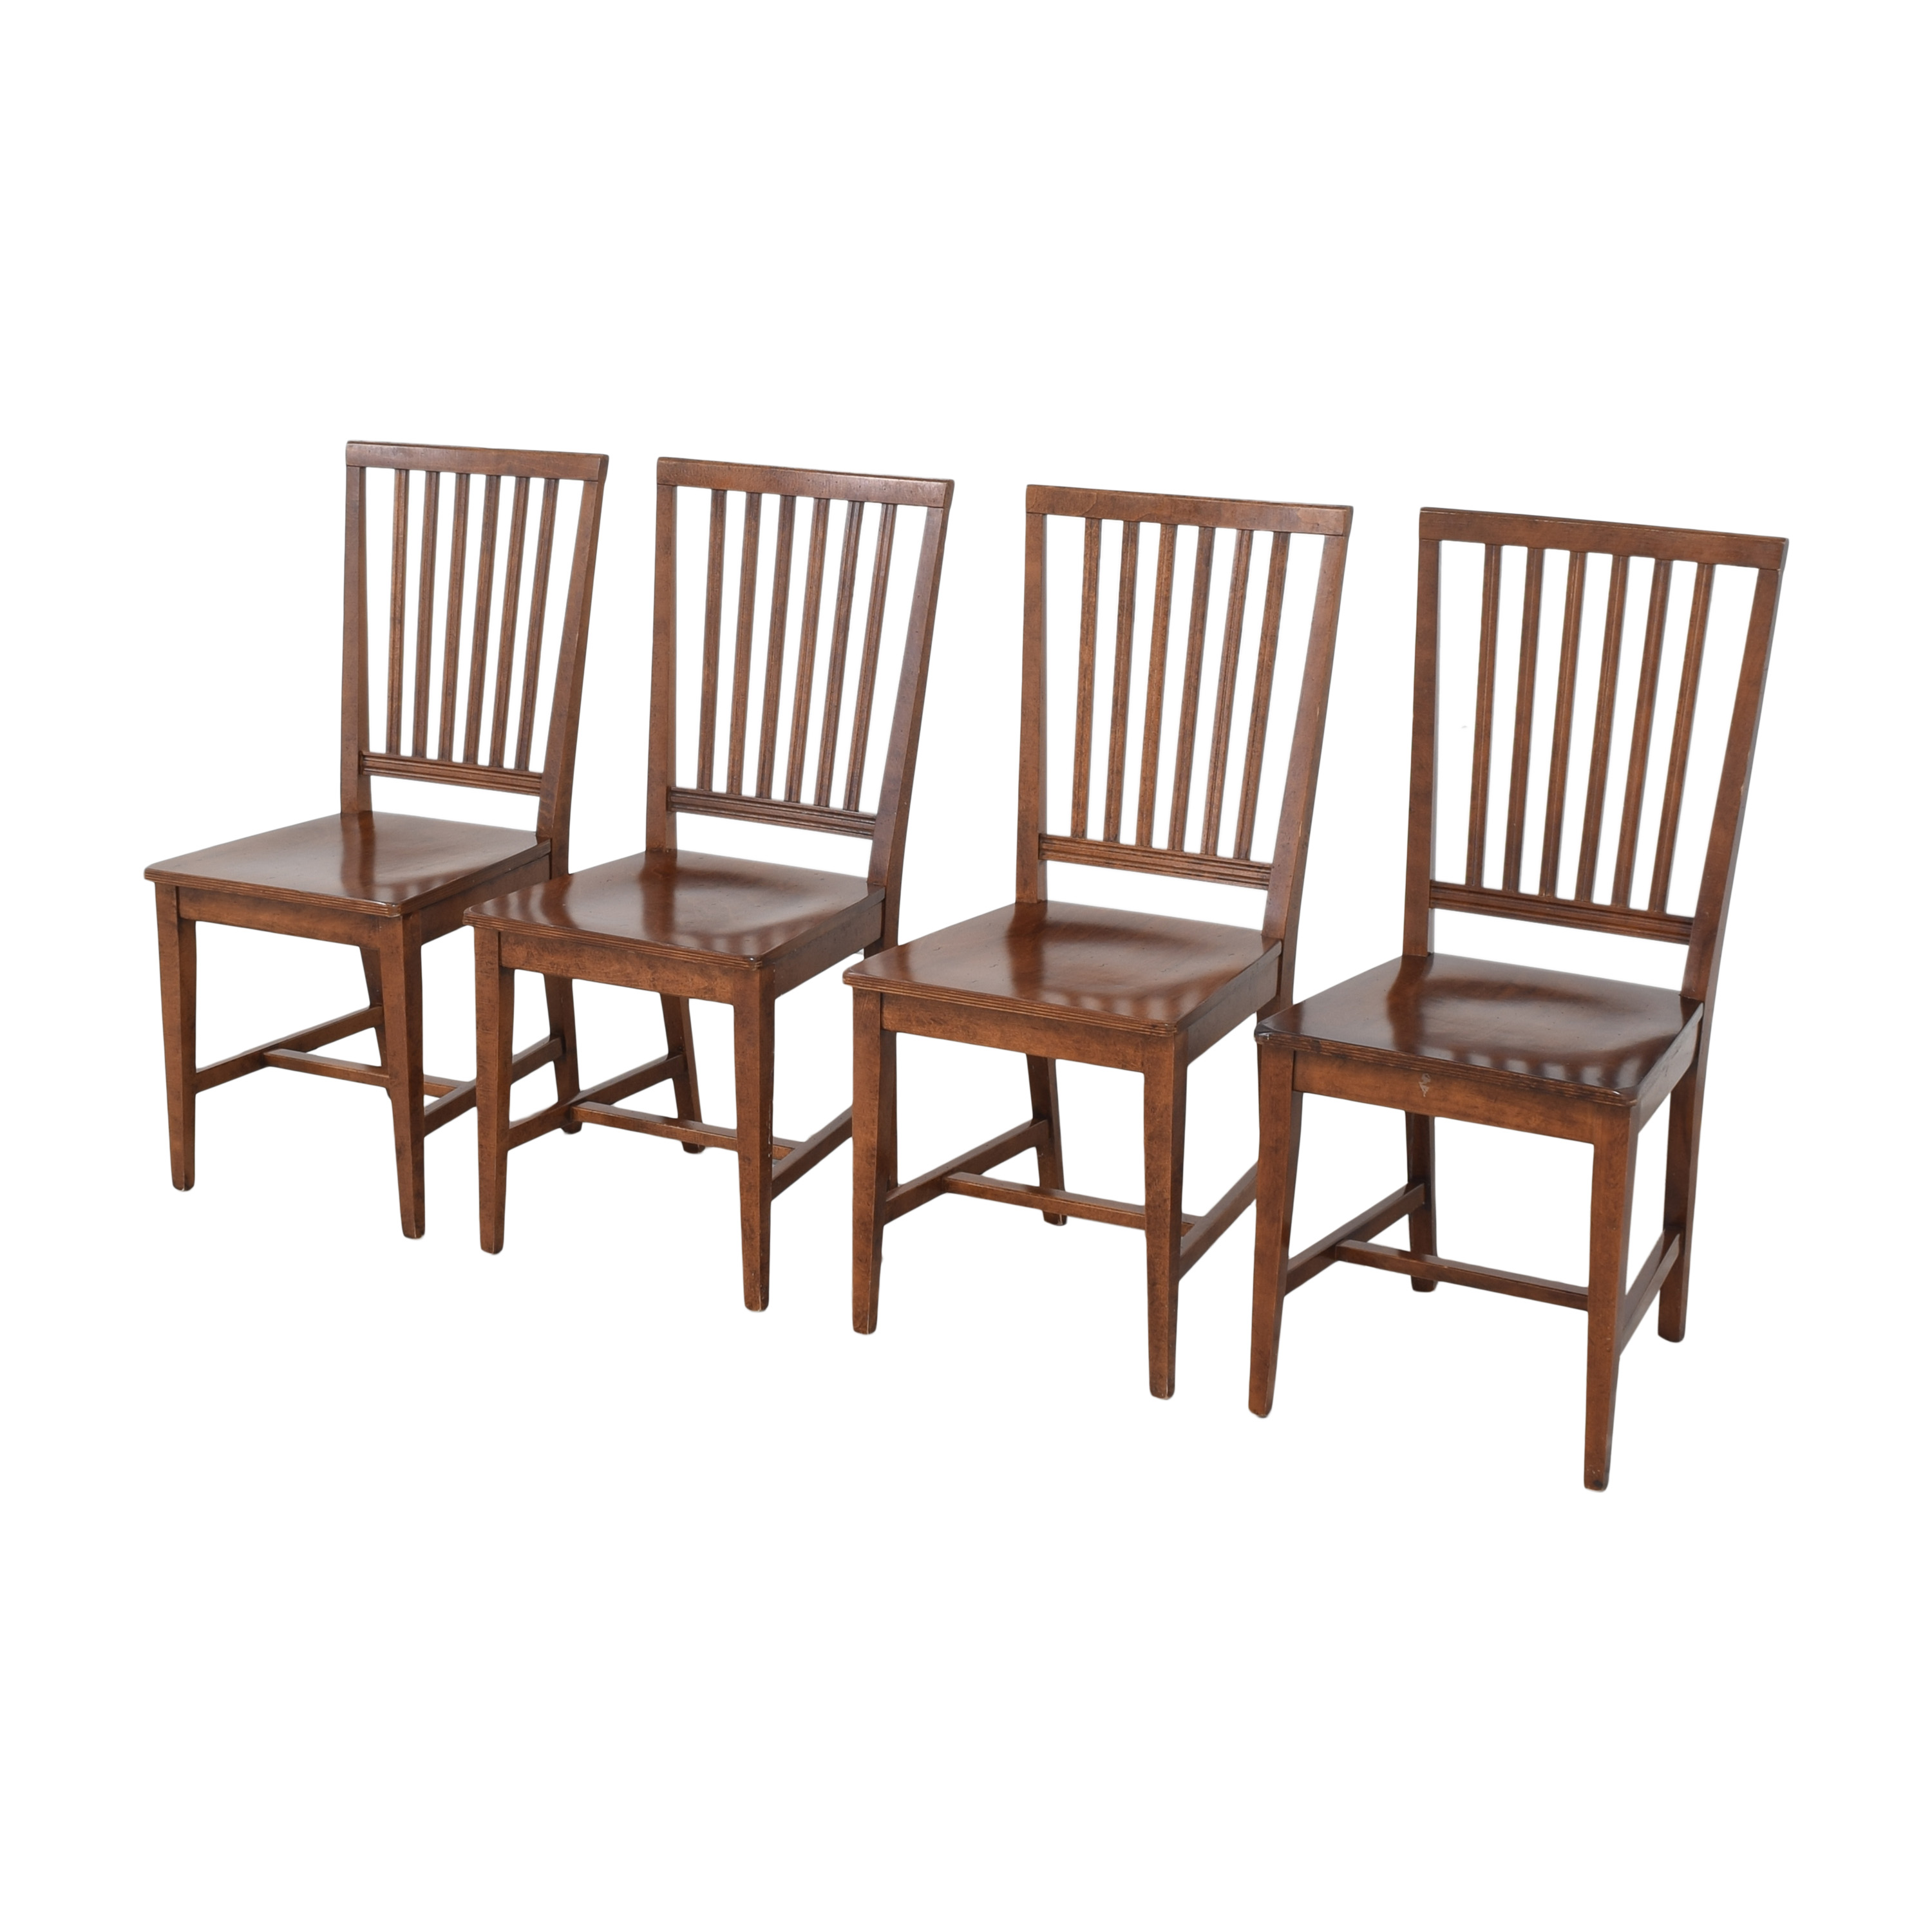 Crate & Barrel Village Nero Noche Dining Chairs sale